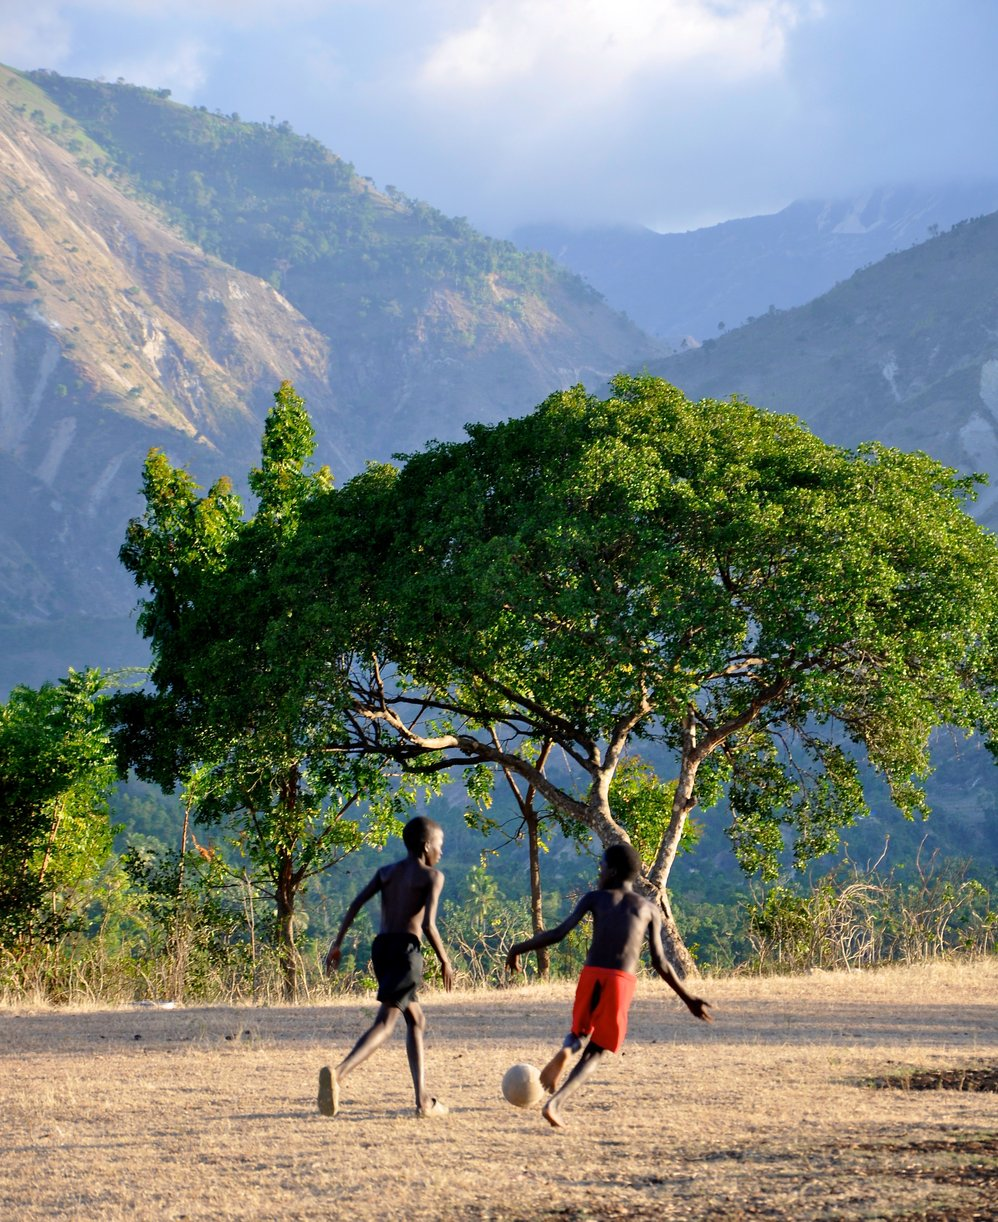 Haitian Soccer Field